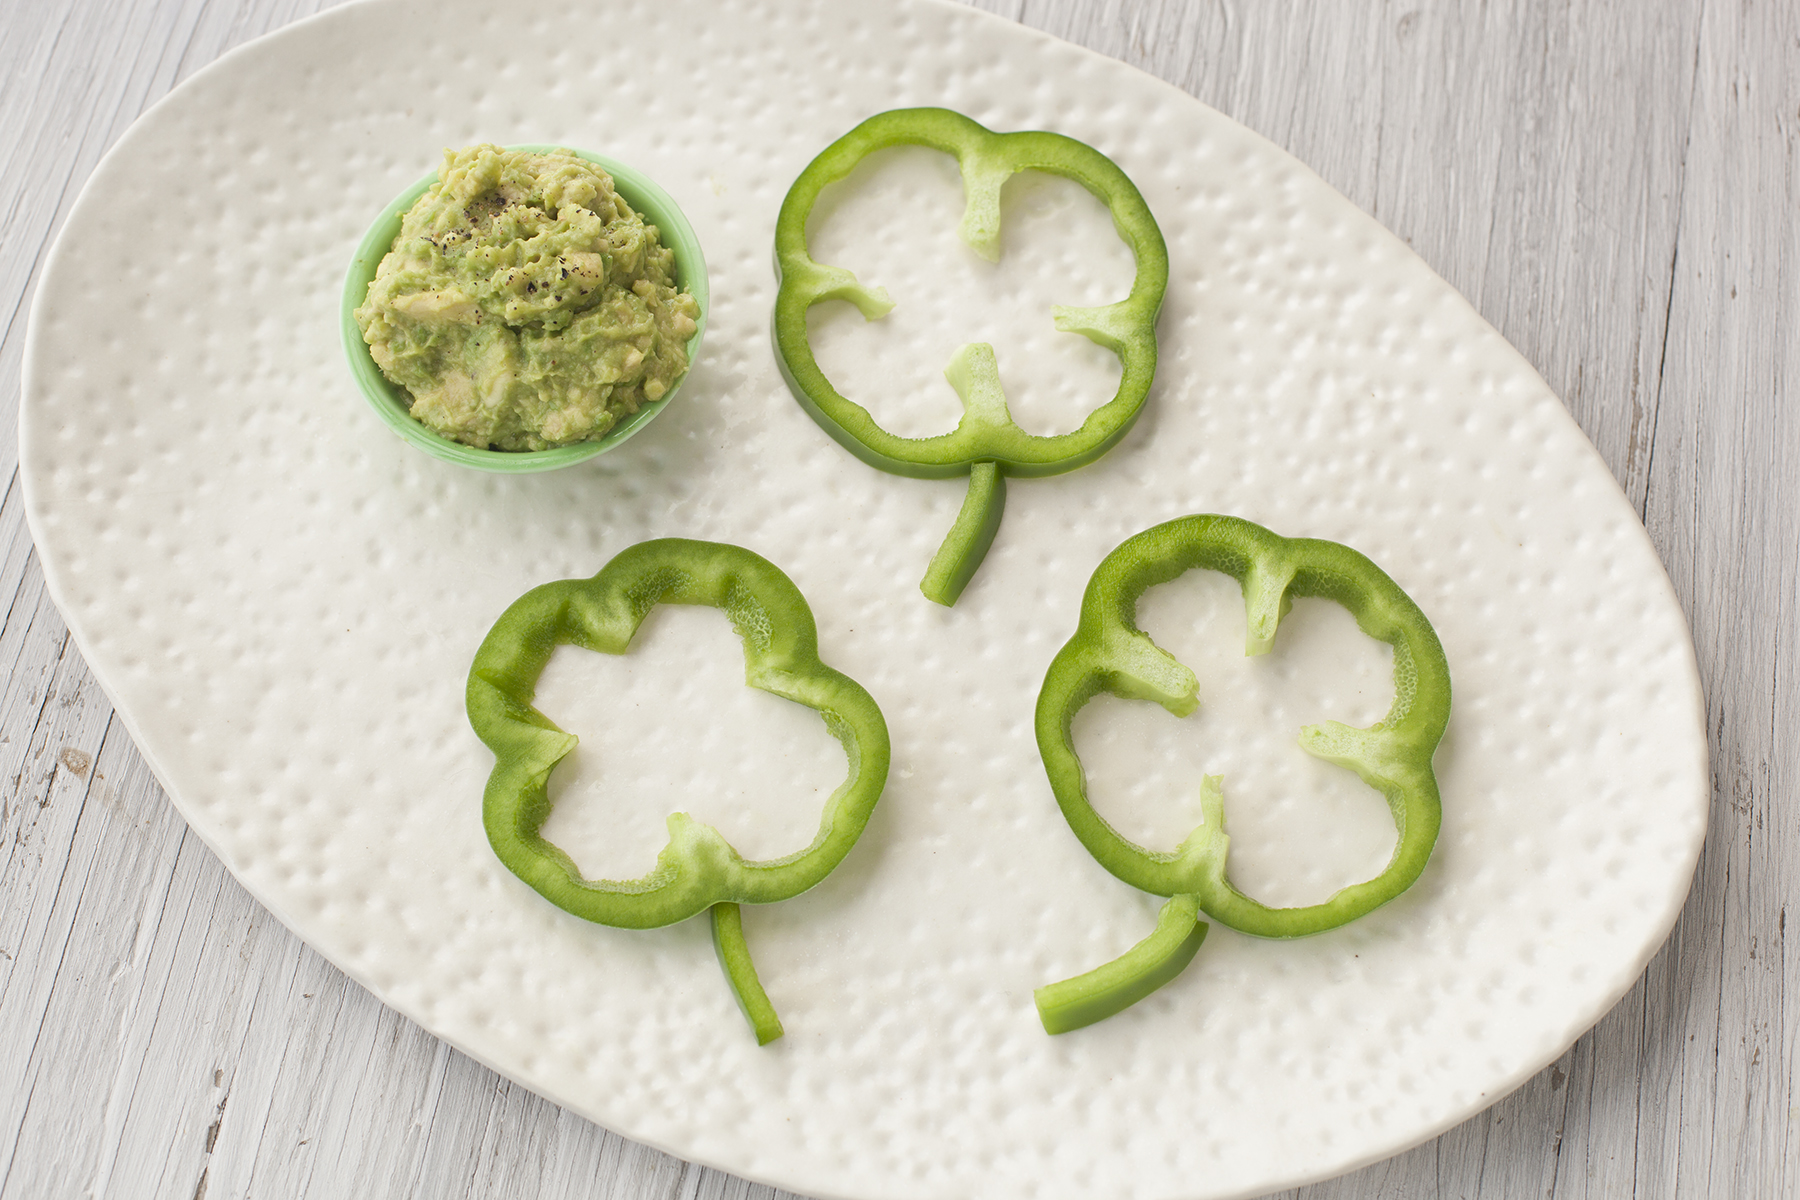 Healthy St. Patrick's Day Snack Bell Pepper Shamrocks with Avocado Dip